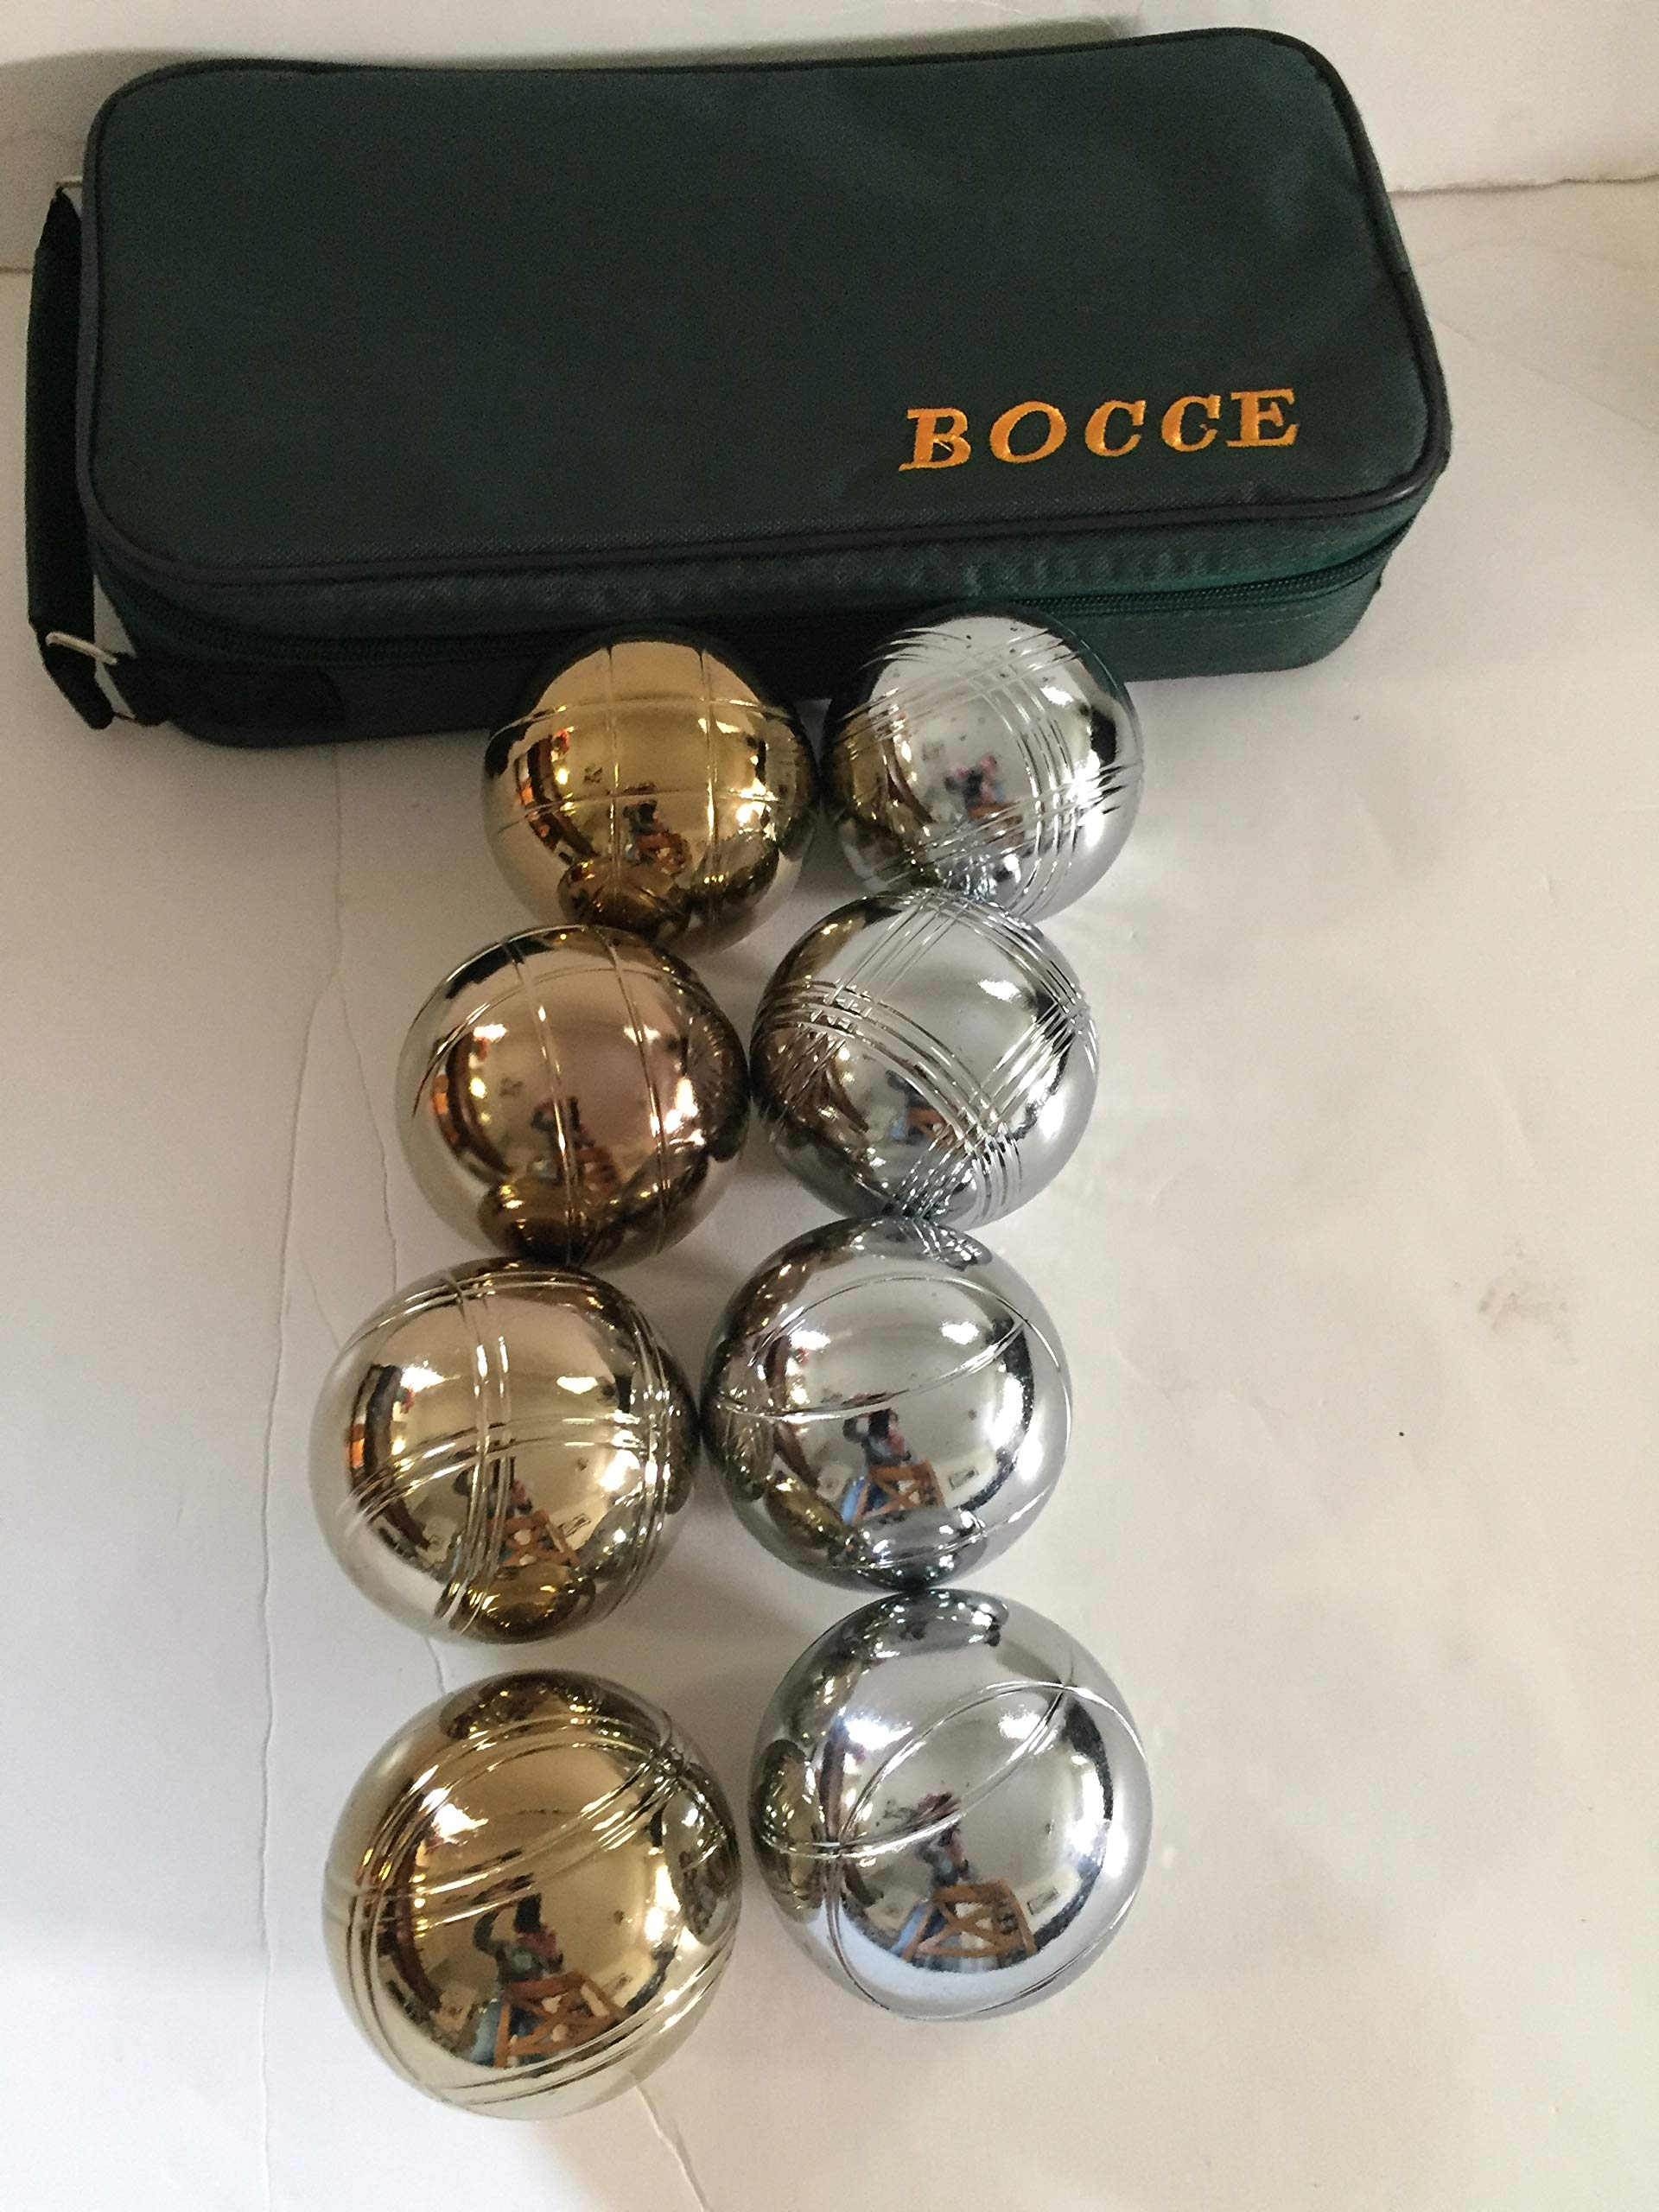 73mm Metal Bocce/Petanque Set with 8 Gold and Silver balls and green bag - single by BuyBocceBalls